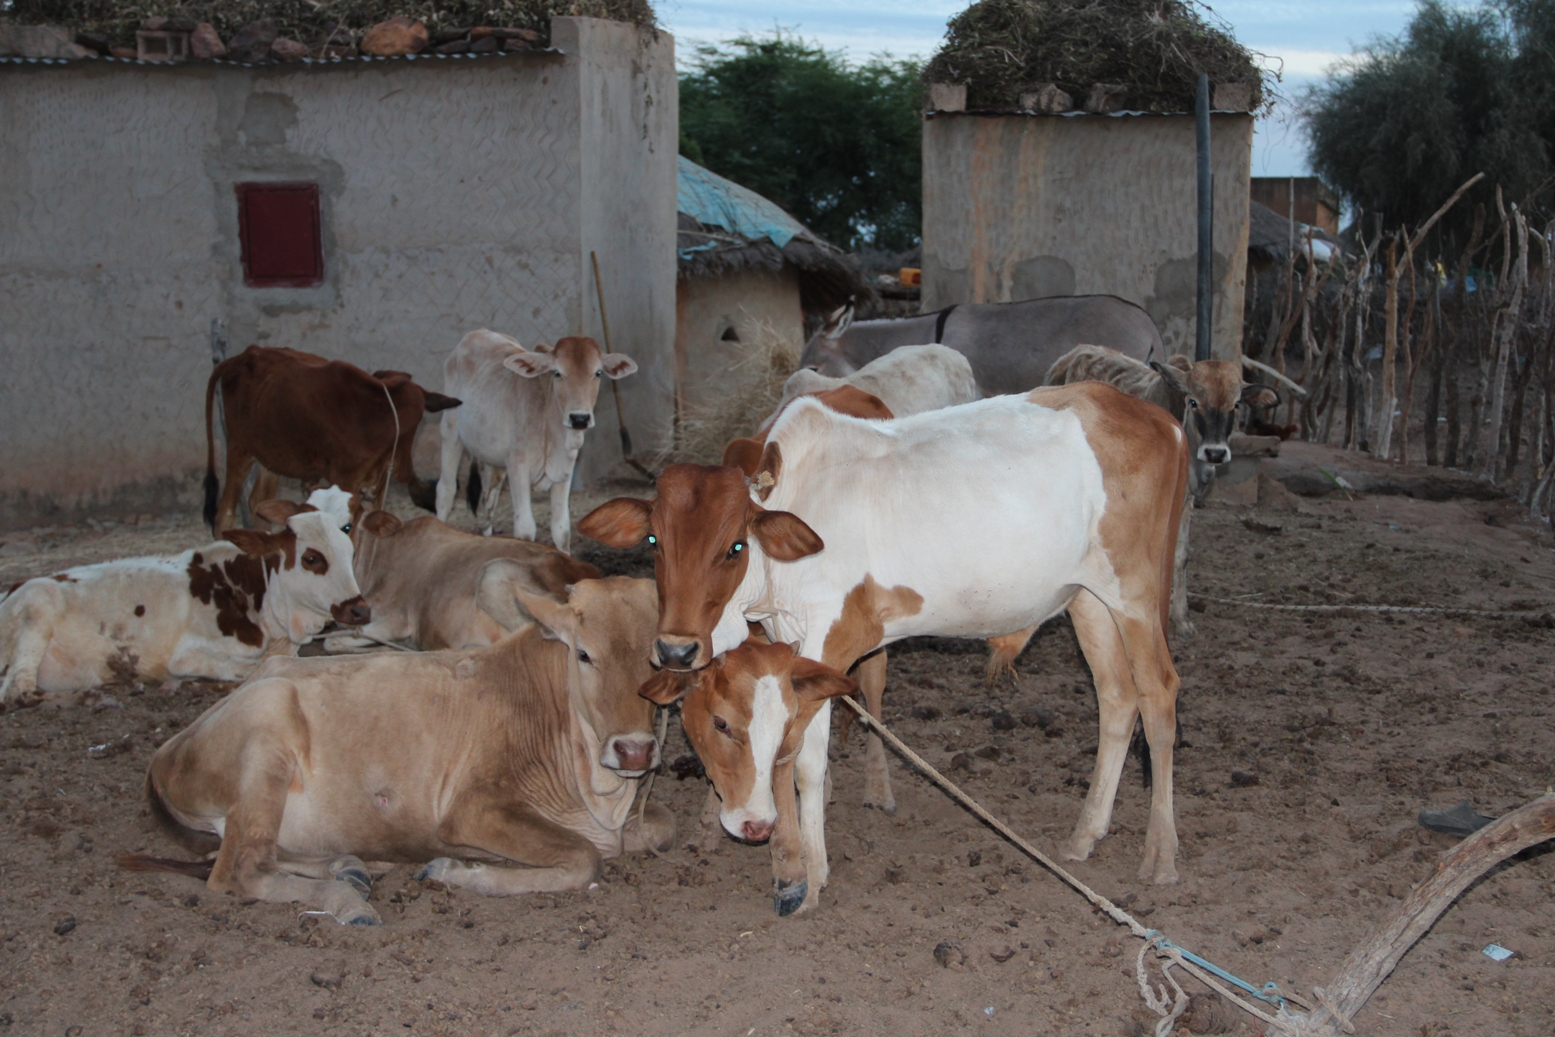 Seyinna Gababe, a village 18km from Kaédi, villagers received no aid in 2012. They lost a lot of their animals and many did not harvest at all. They survived by going into debt. These are the only livestock that remain